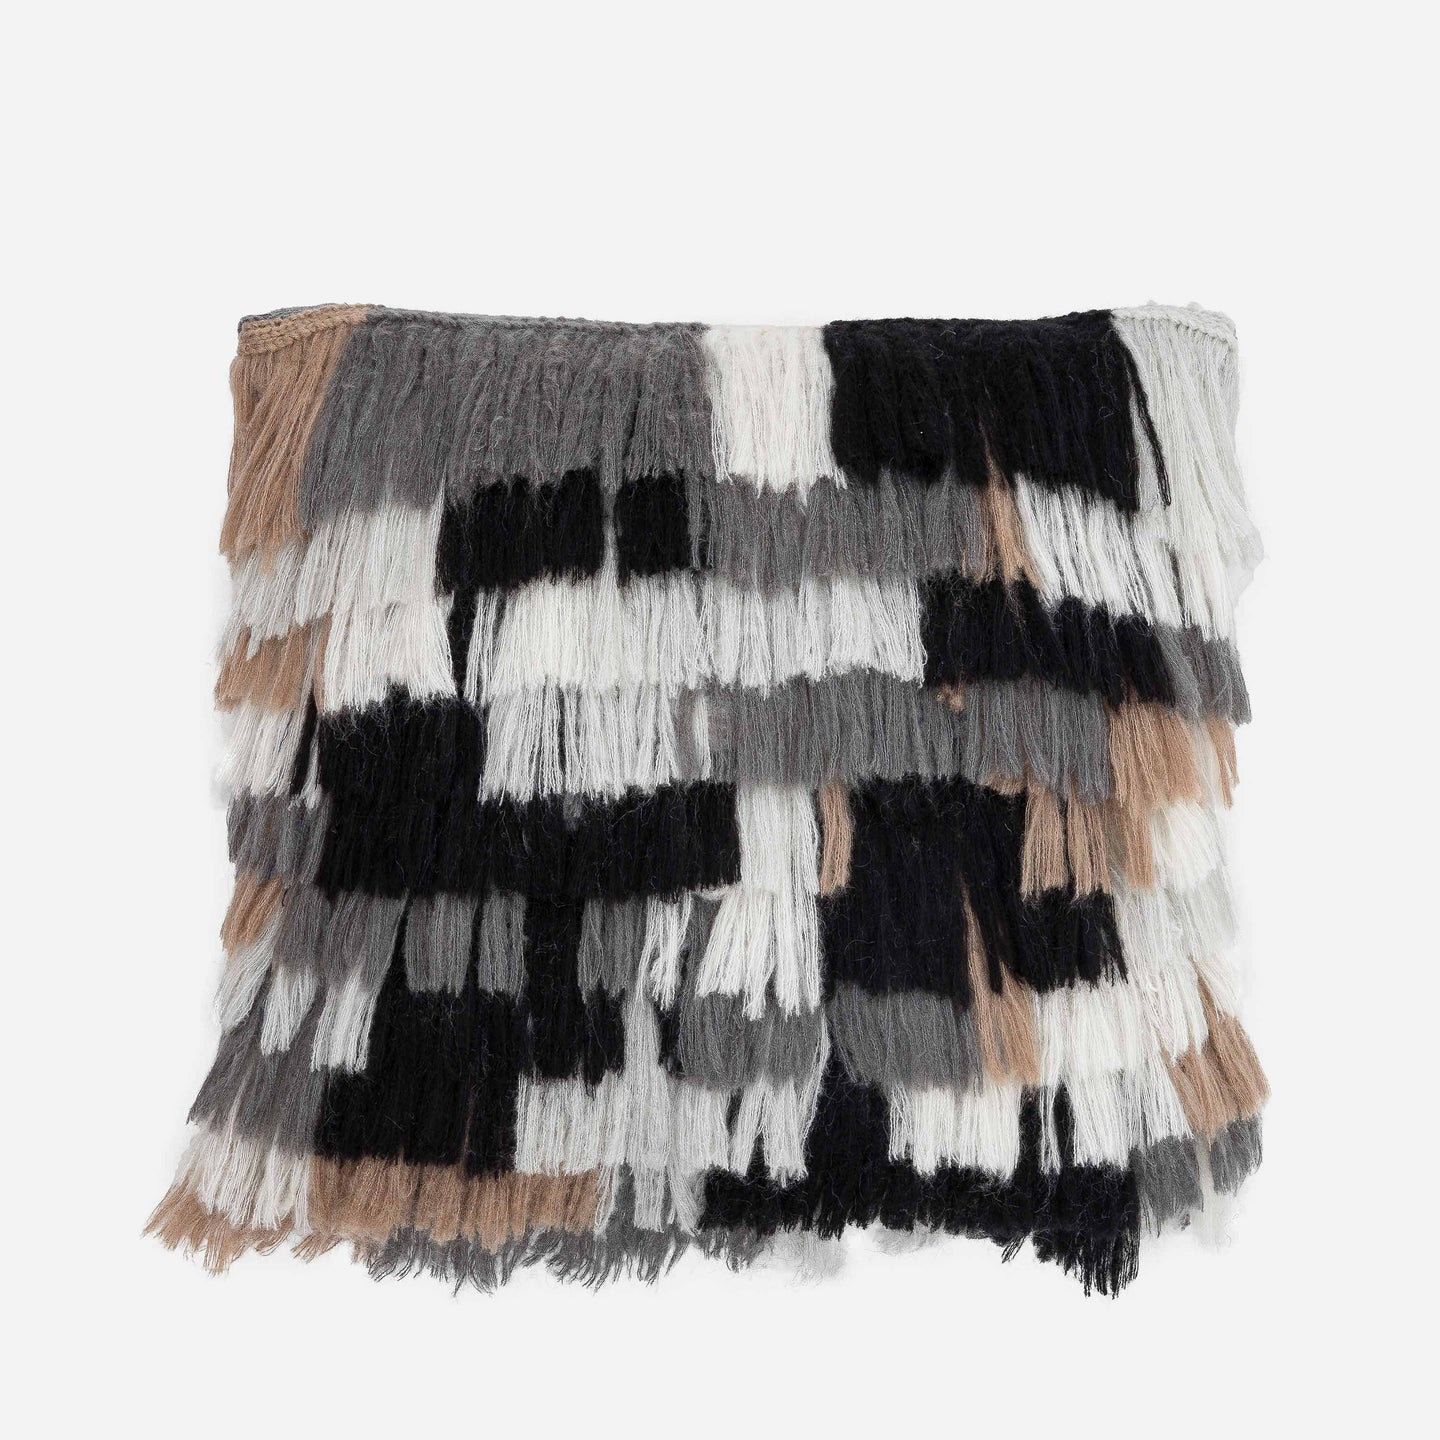 Patchwork Colorblock Fringe PIllow Repurposed Layered